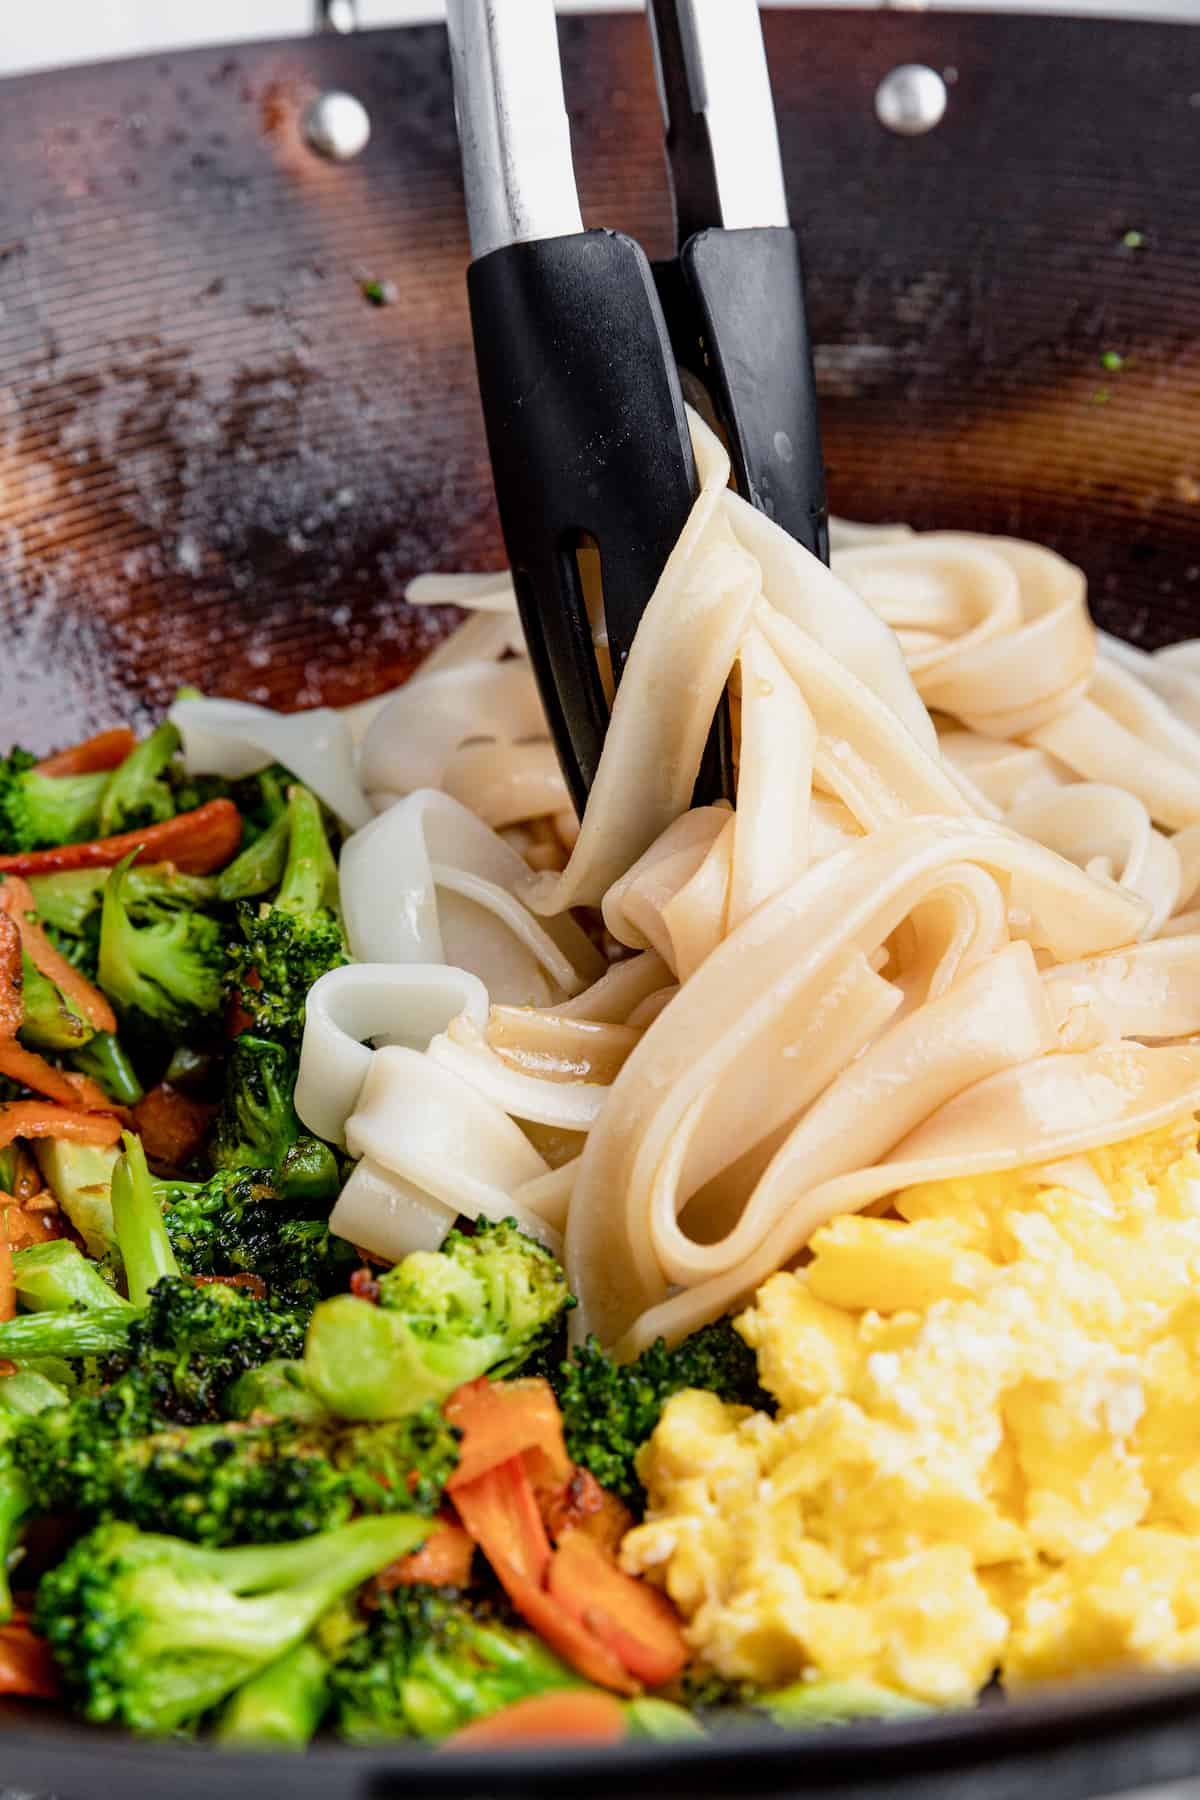 A Pair of Tongs Mixing the Noodles with the Eggs and Vegetables